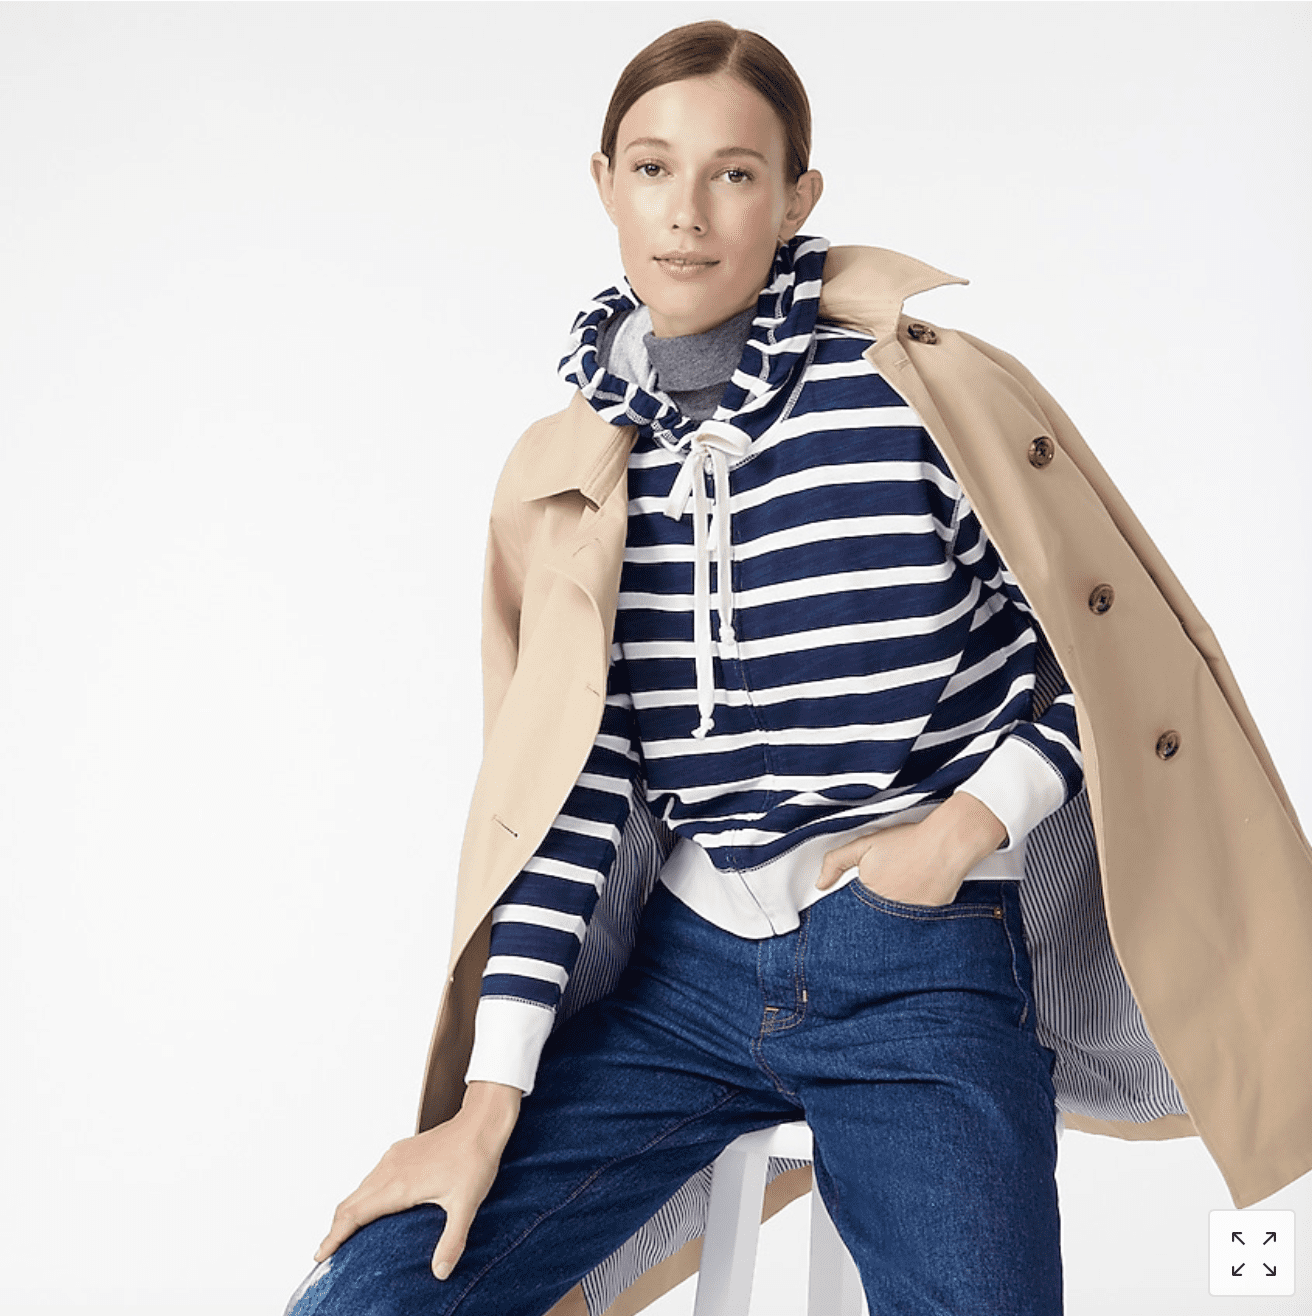 J.Crew: Up to 70% off sale styles + extra 50% off